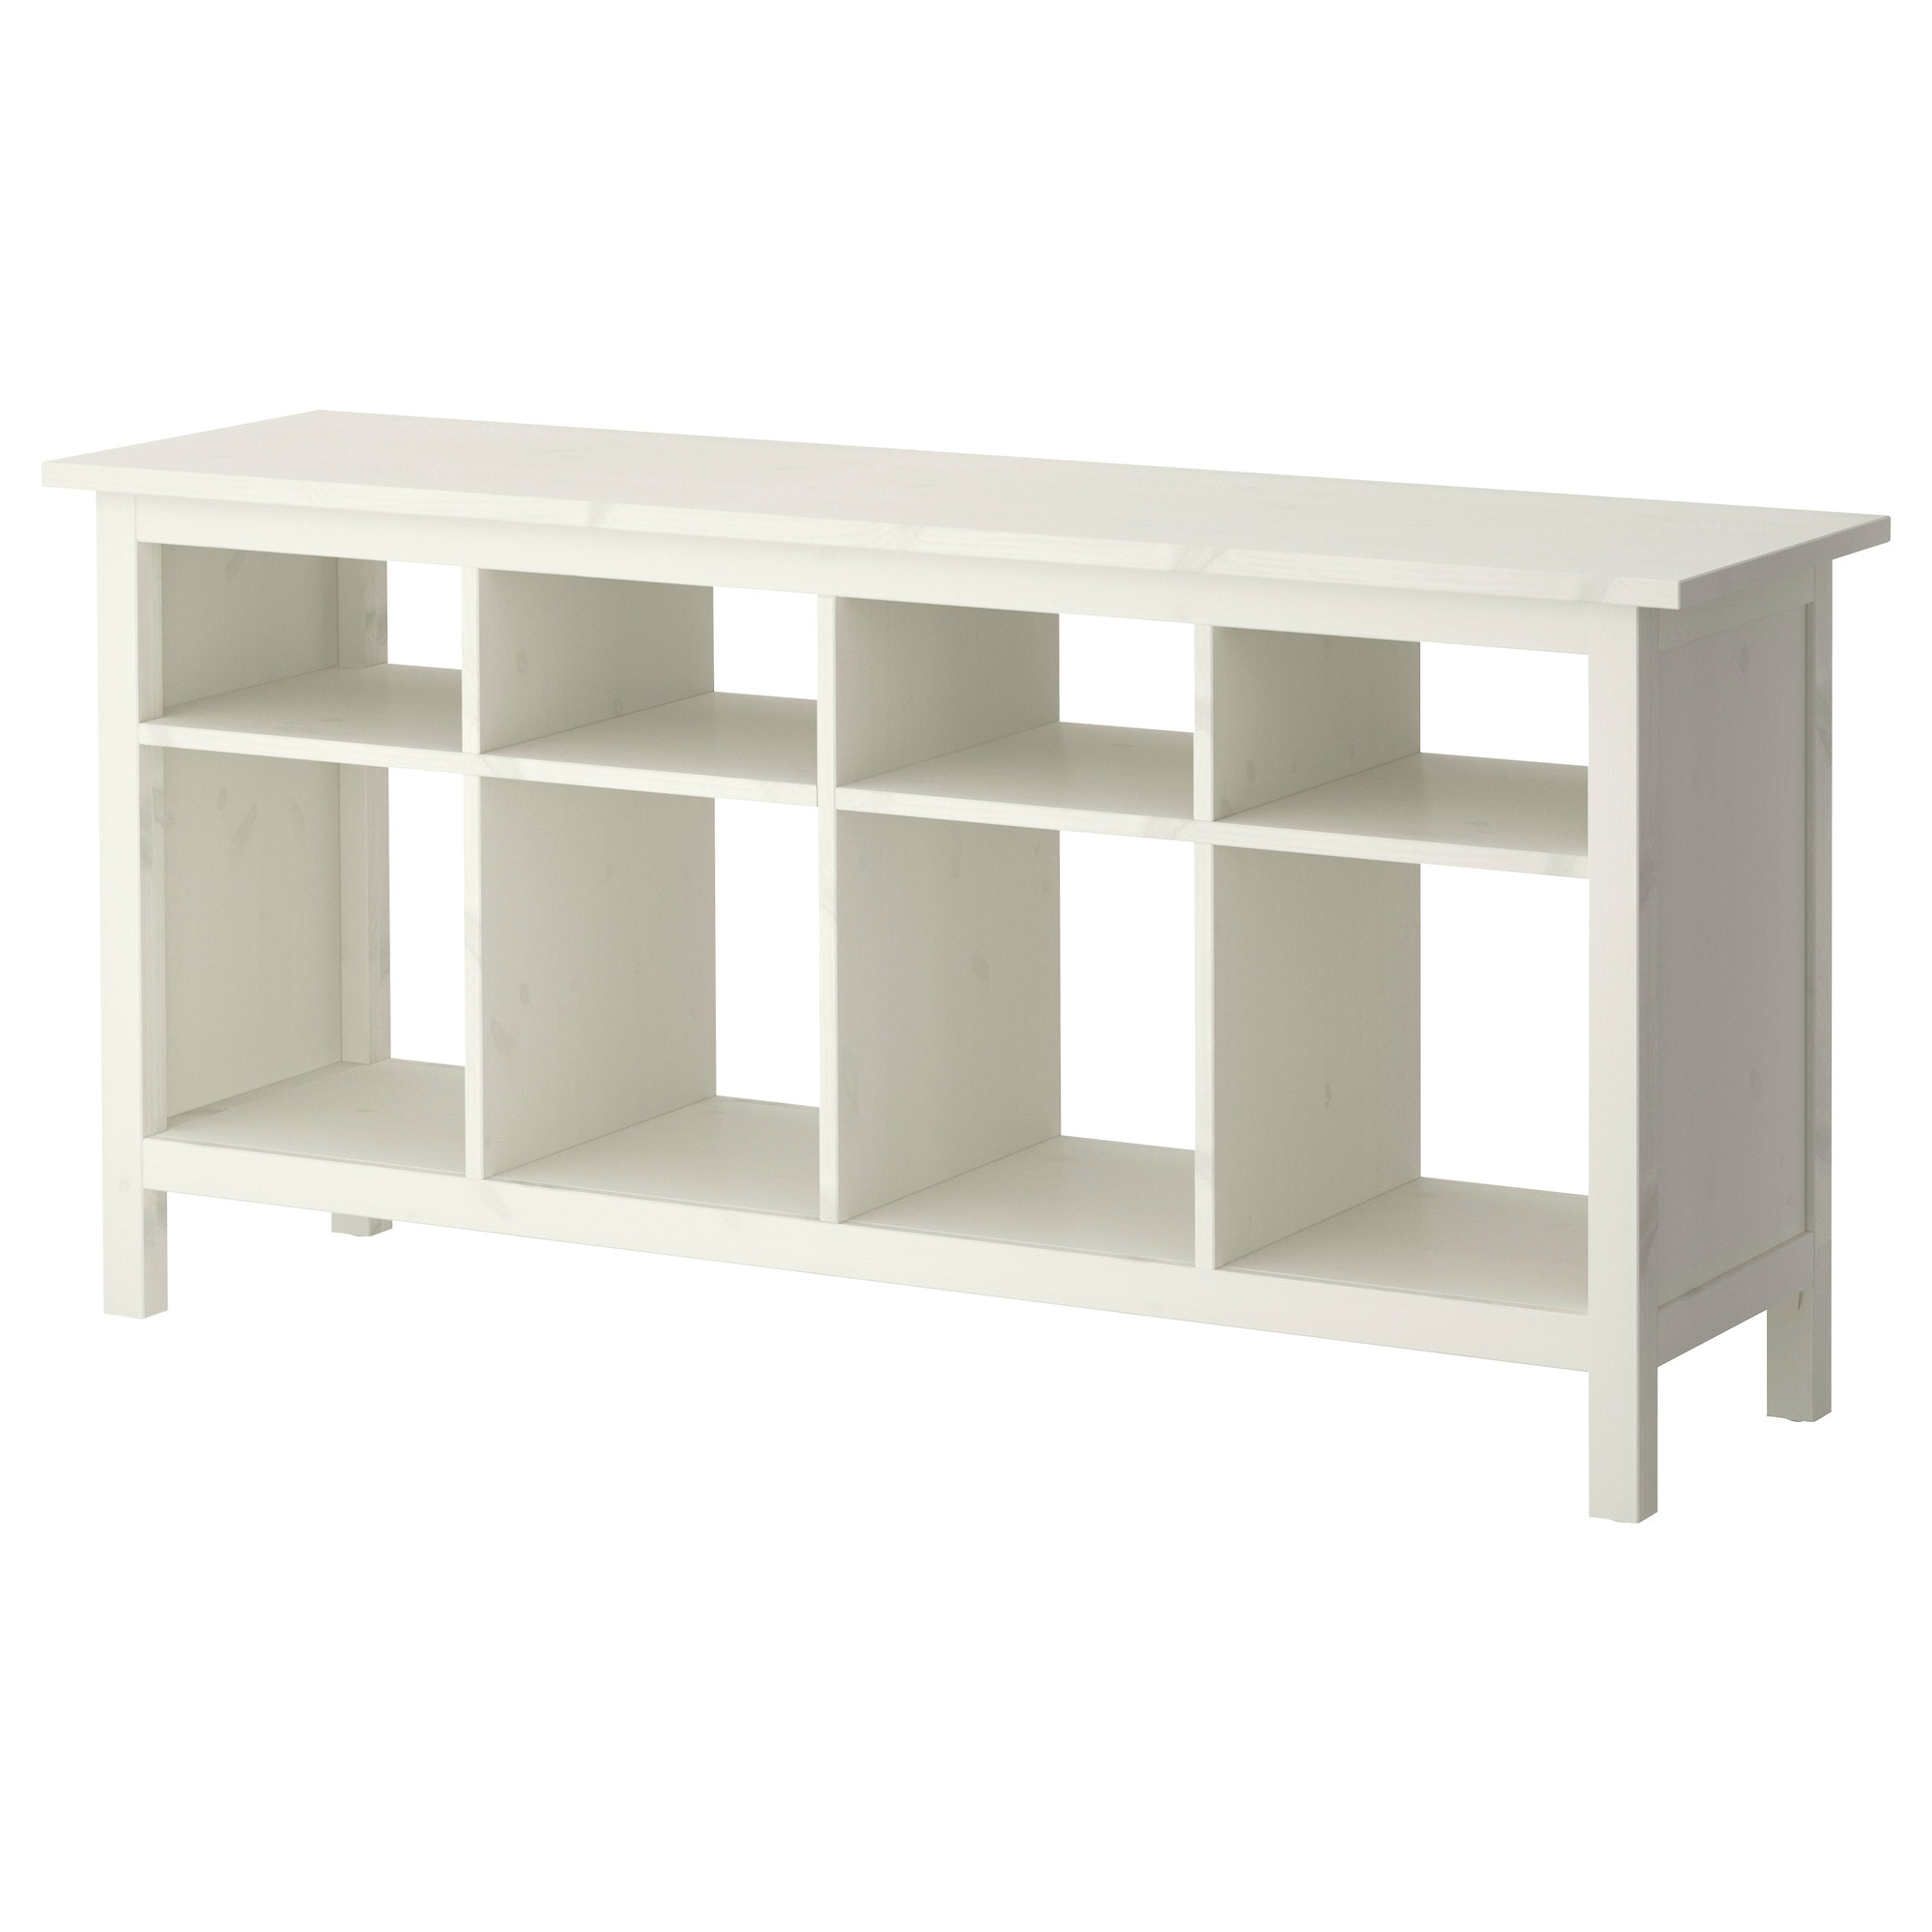 . hemnes console table  white stain  ikea